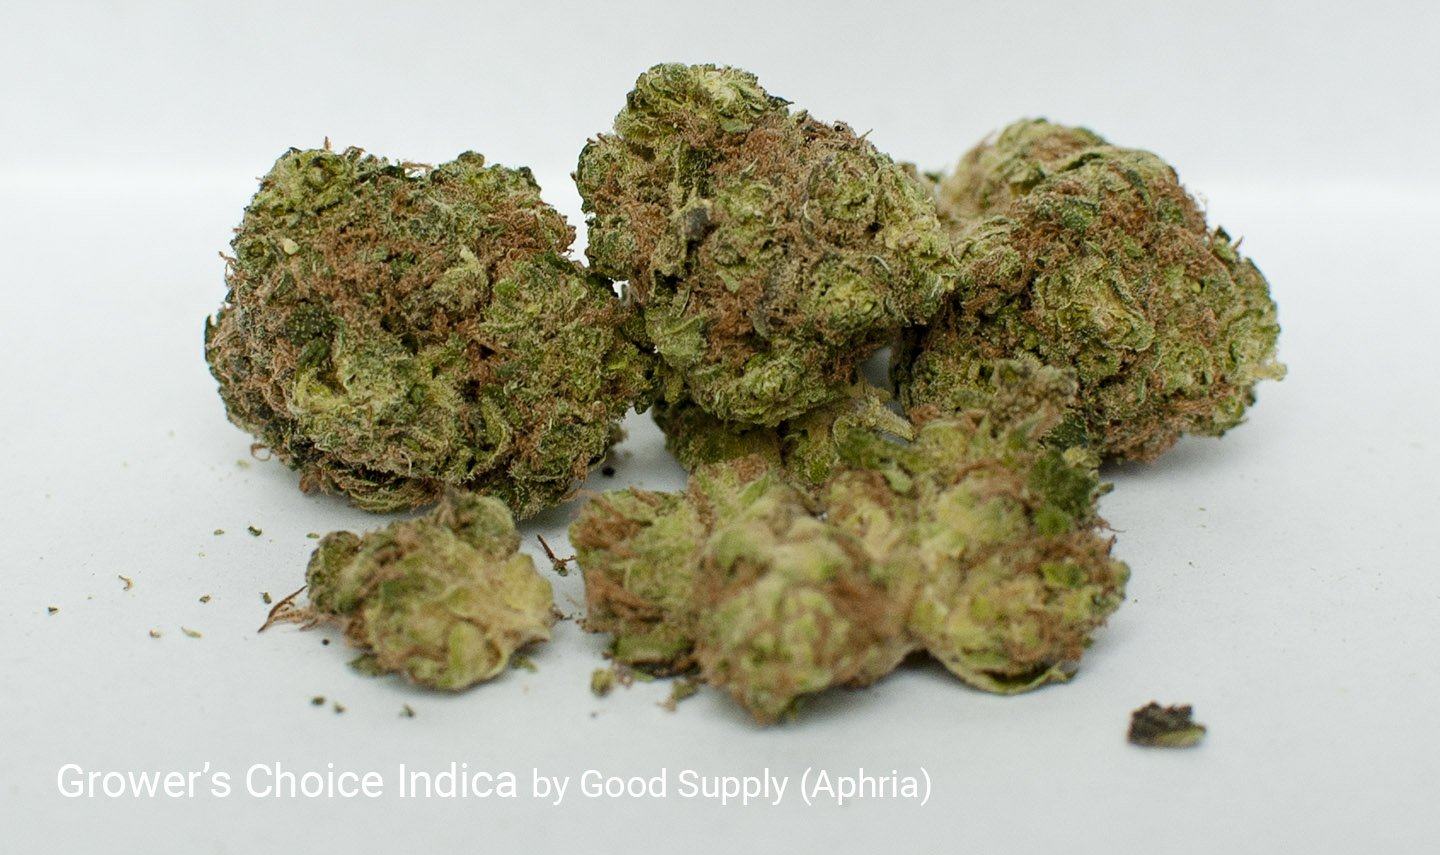 18.52% THC Grower's Choice Indica by Good Supply